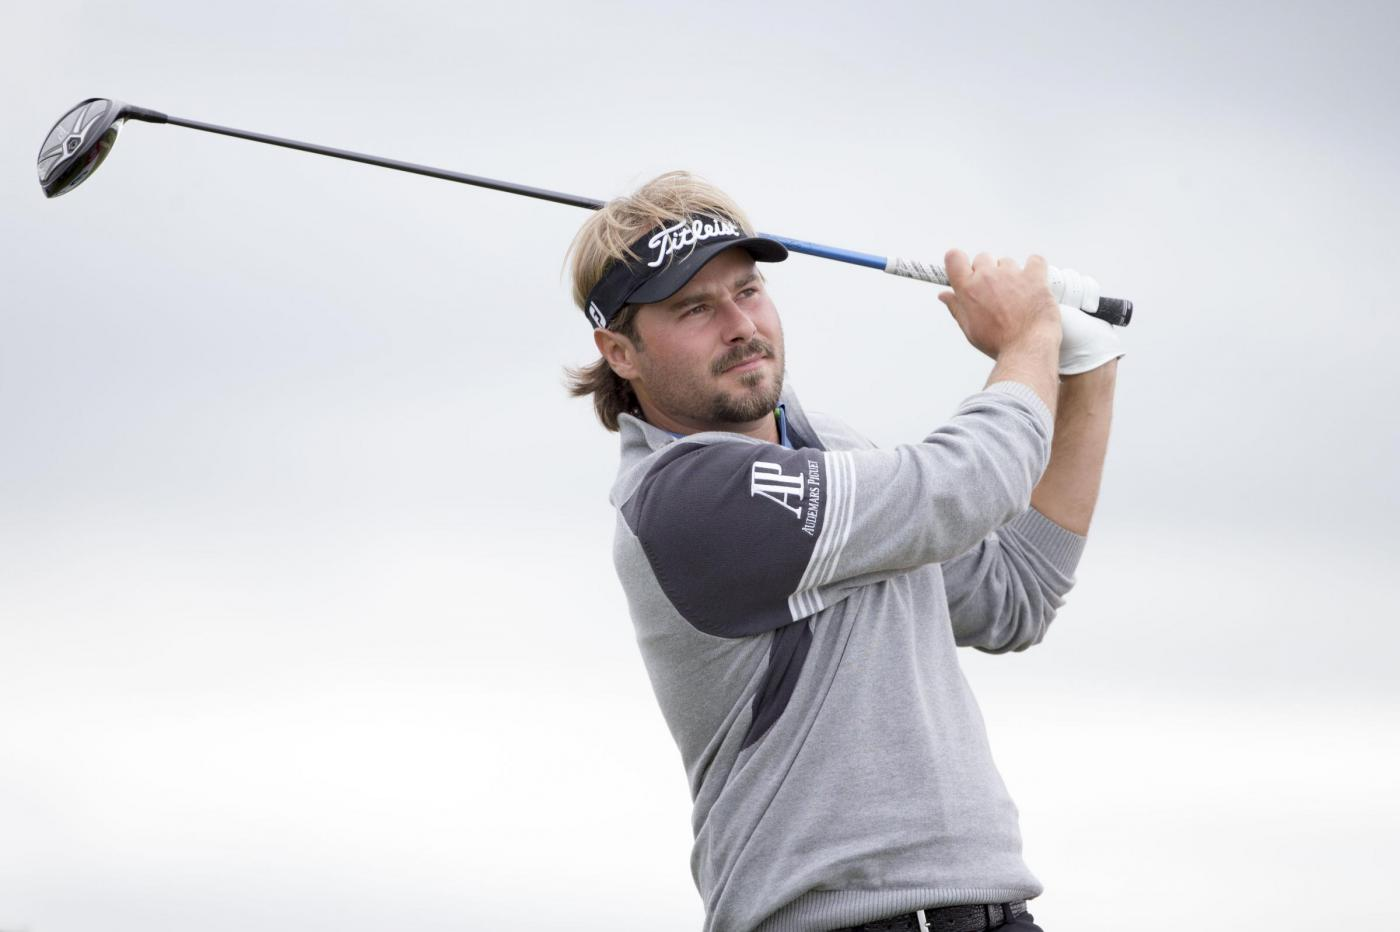 France's Victor Dubuisson tees of at the 14th tee during day two of the Scottish Open at Gullane Golf Club, East Lothian. PRESS ASSOCIATION Photo. Picture date: Friday July 10, 2015. See PA story GOLF Gullane. Photo credit should read: Kenny Smith/PA Wire. RESTRICTIONS: Editorial use only. No commercial use. No false commercial association. No video emulation. No manipulation of images.